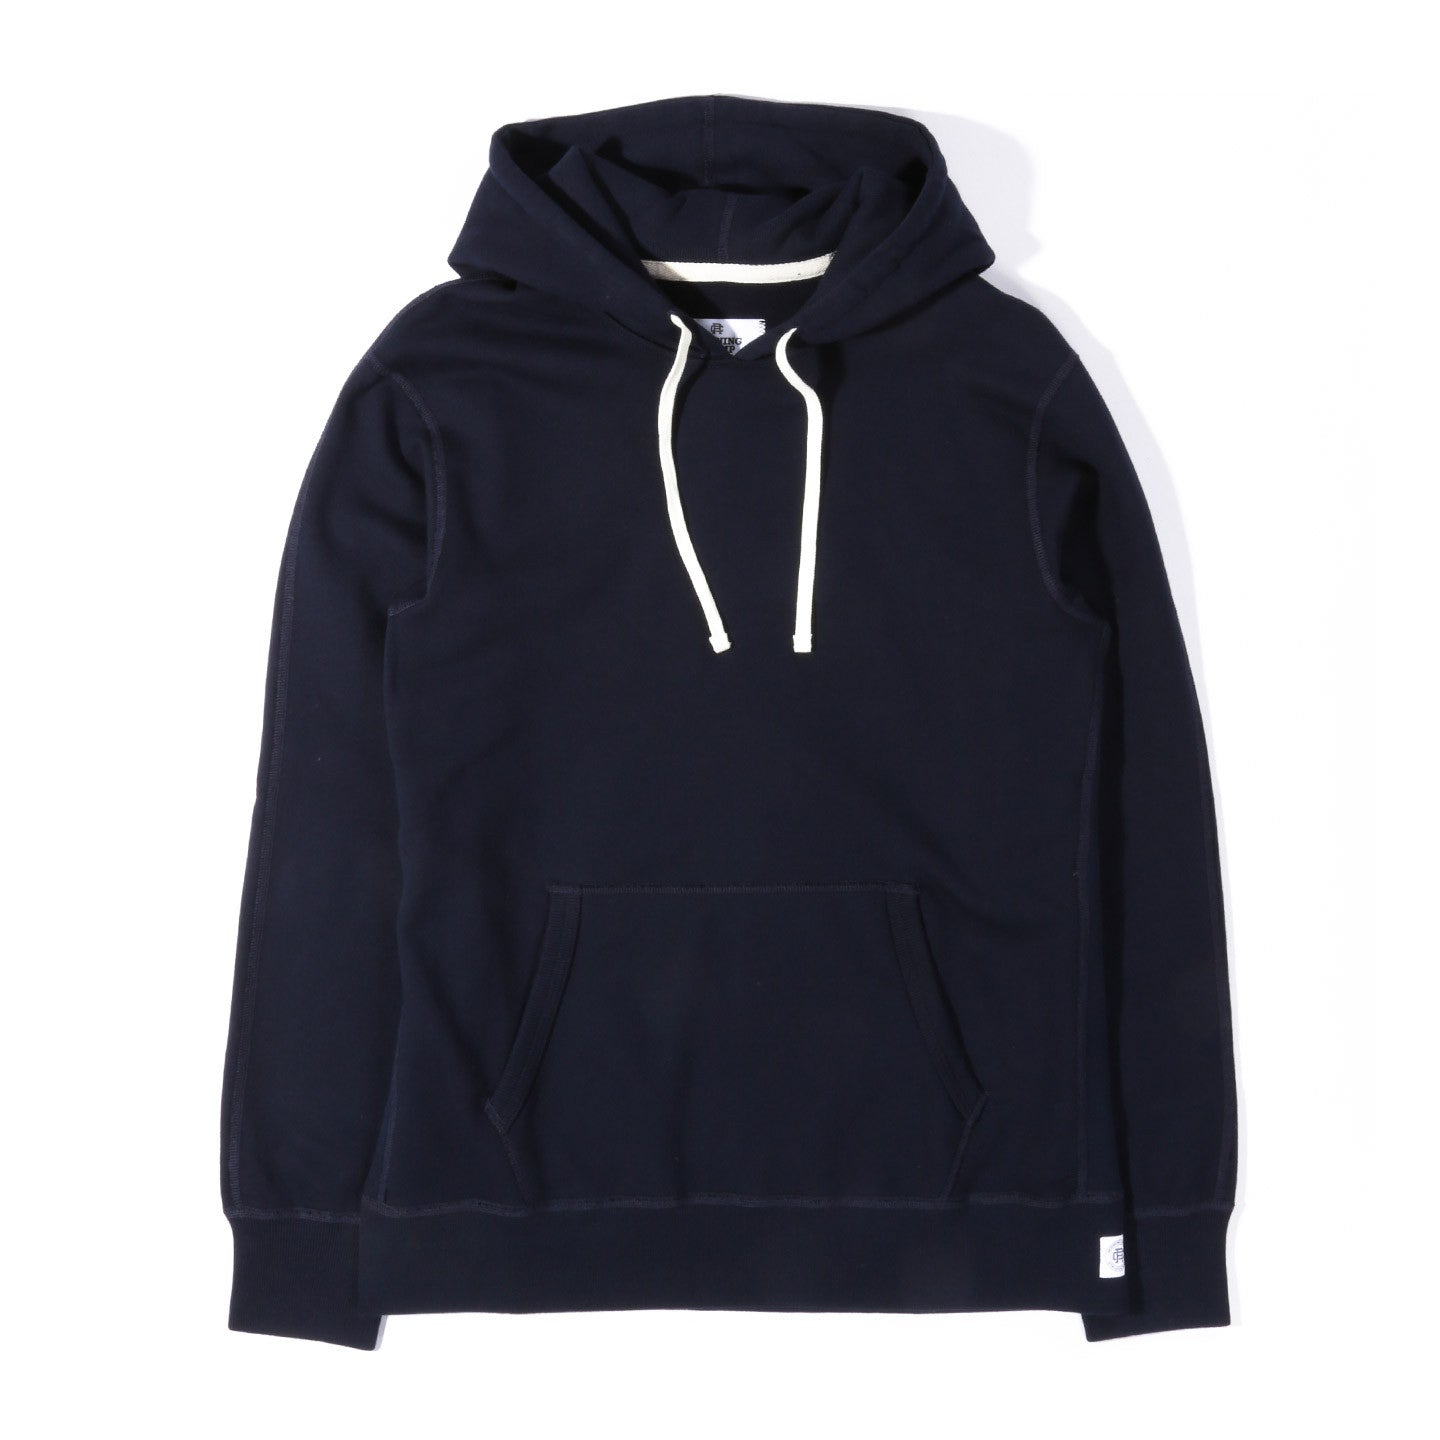 REIGNING CHAMP MIDWEIGHT TERRY PULLOVER HOODY NAVY